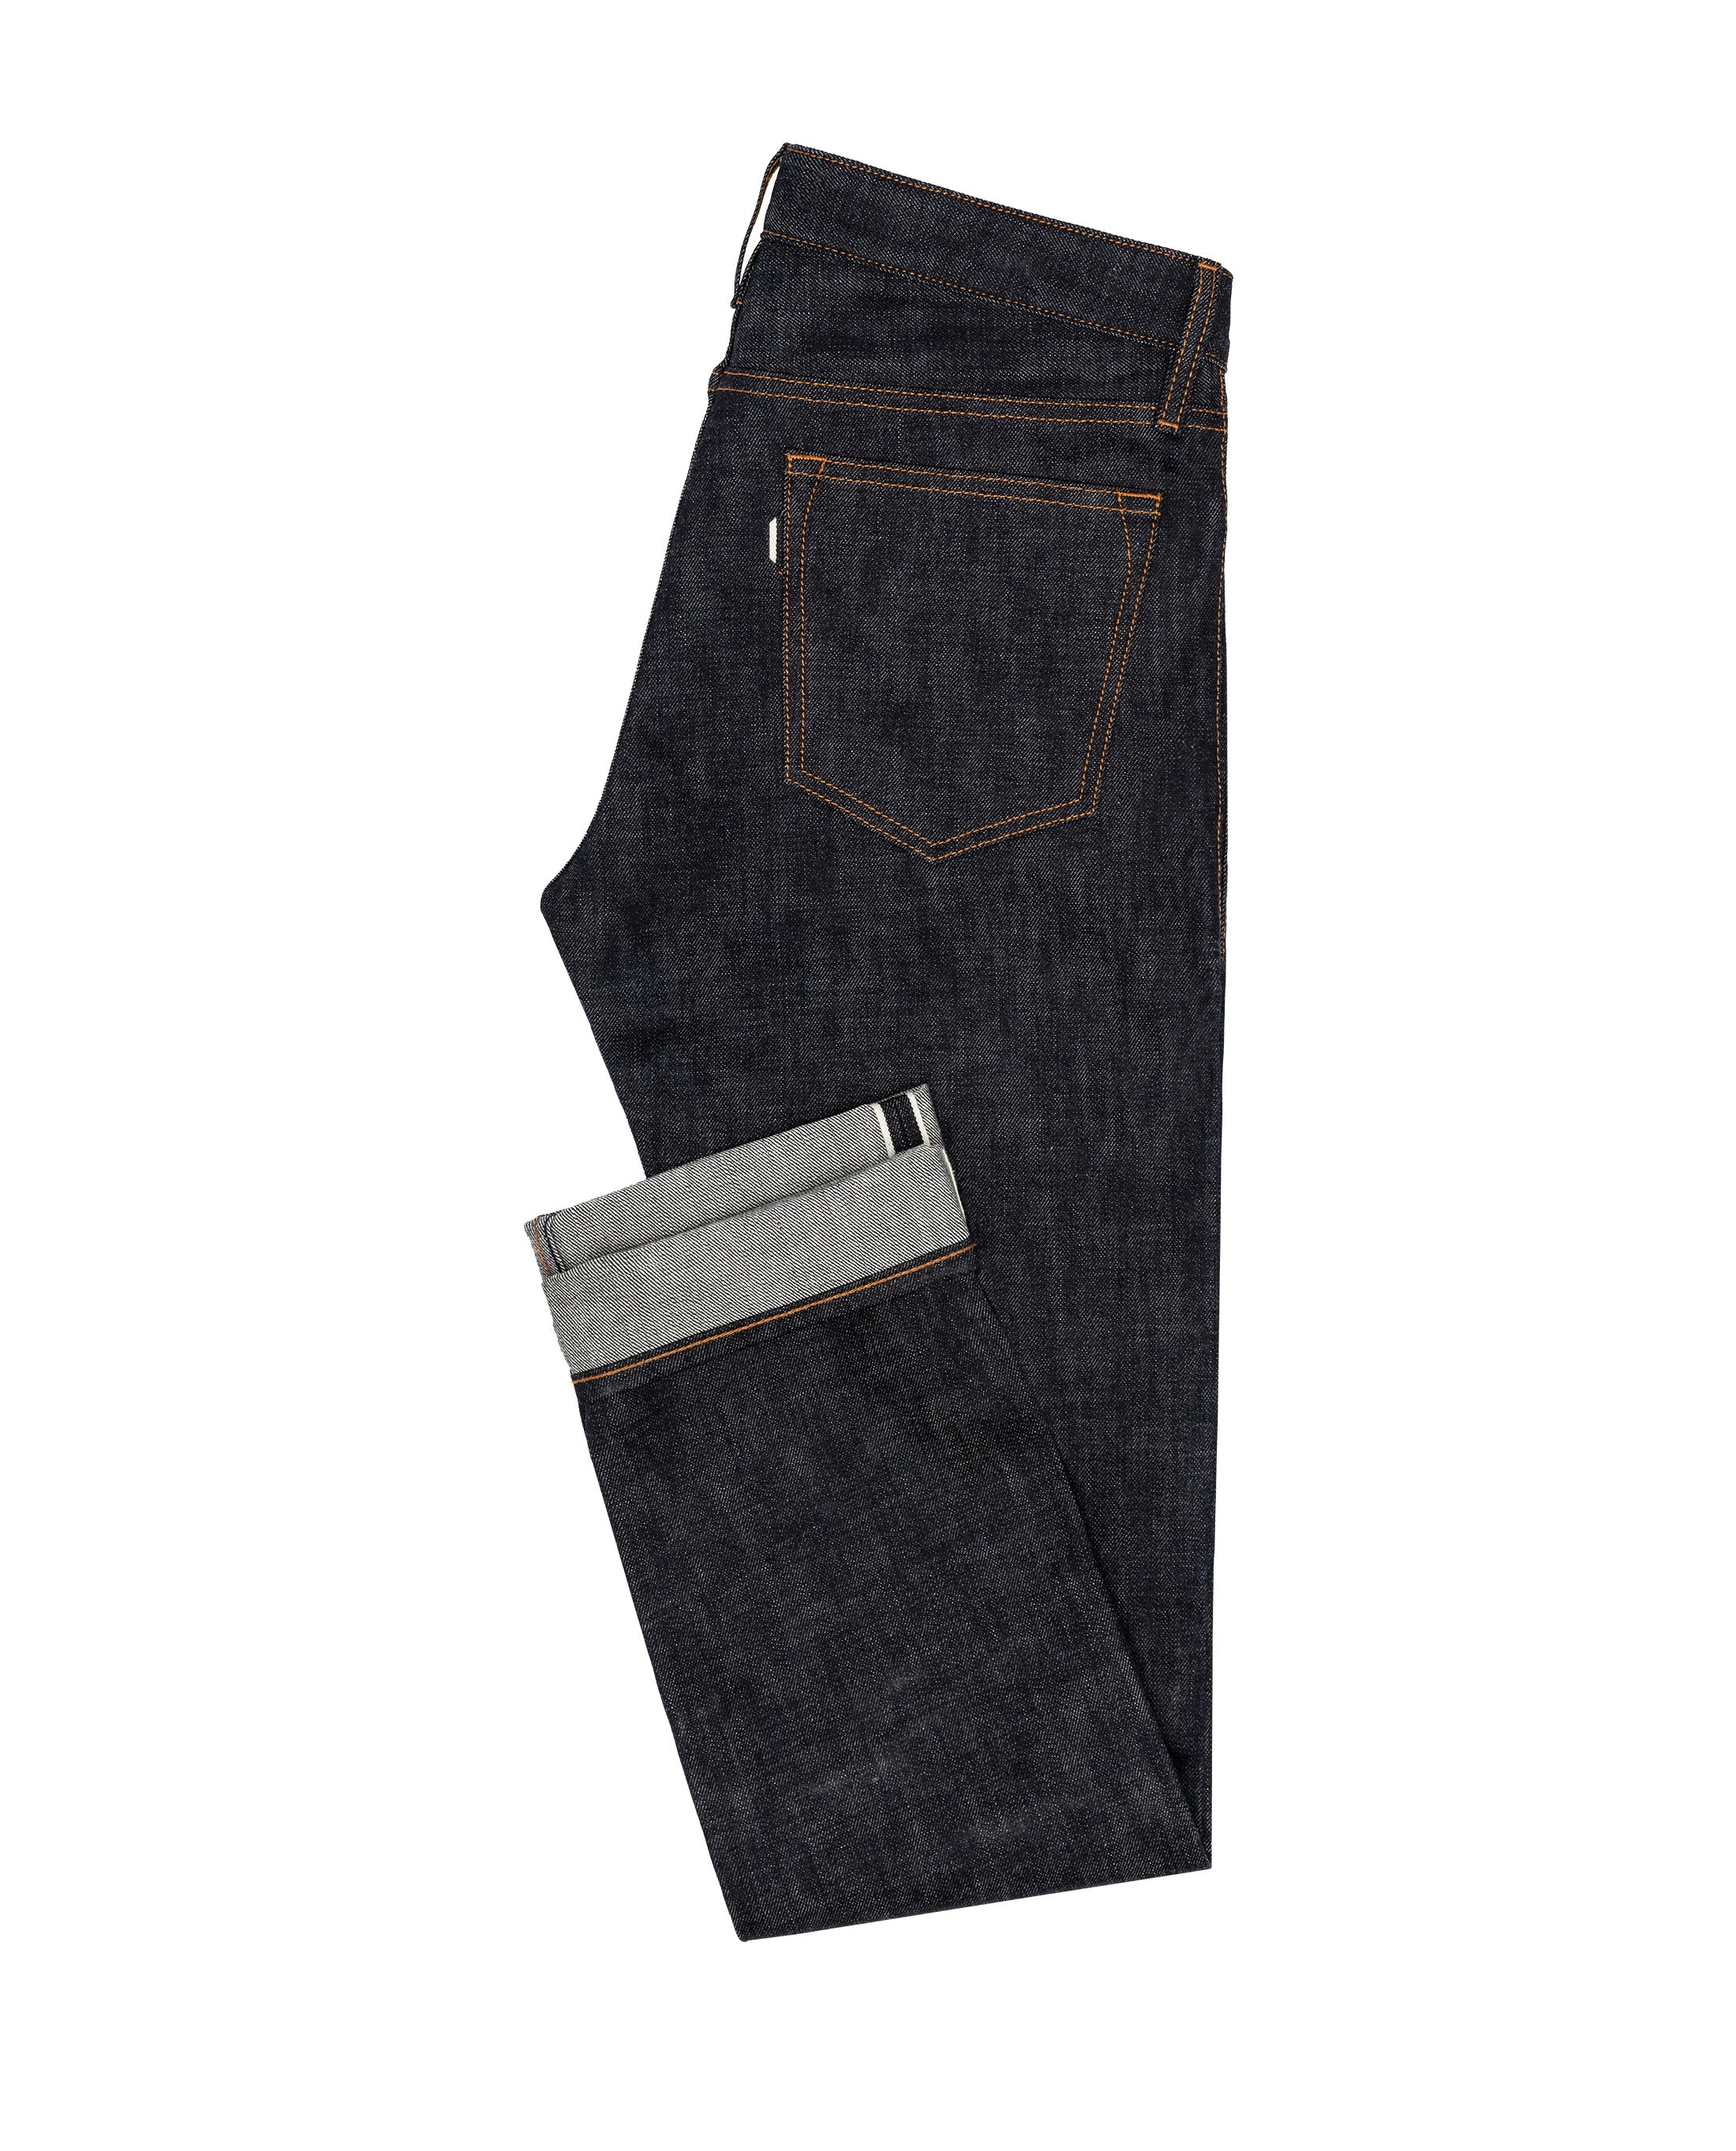 DEN008 Raw Selvedge 5 pocket, Made In Italy. Medlemspris 2.400,-